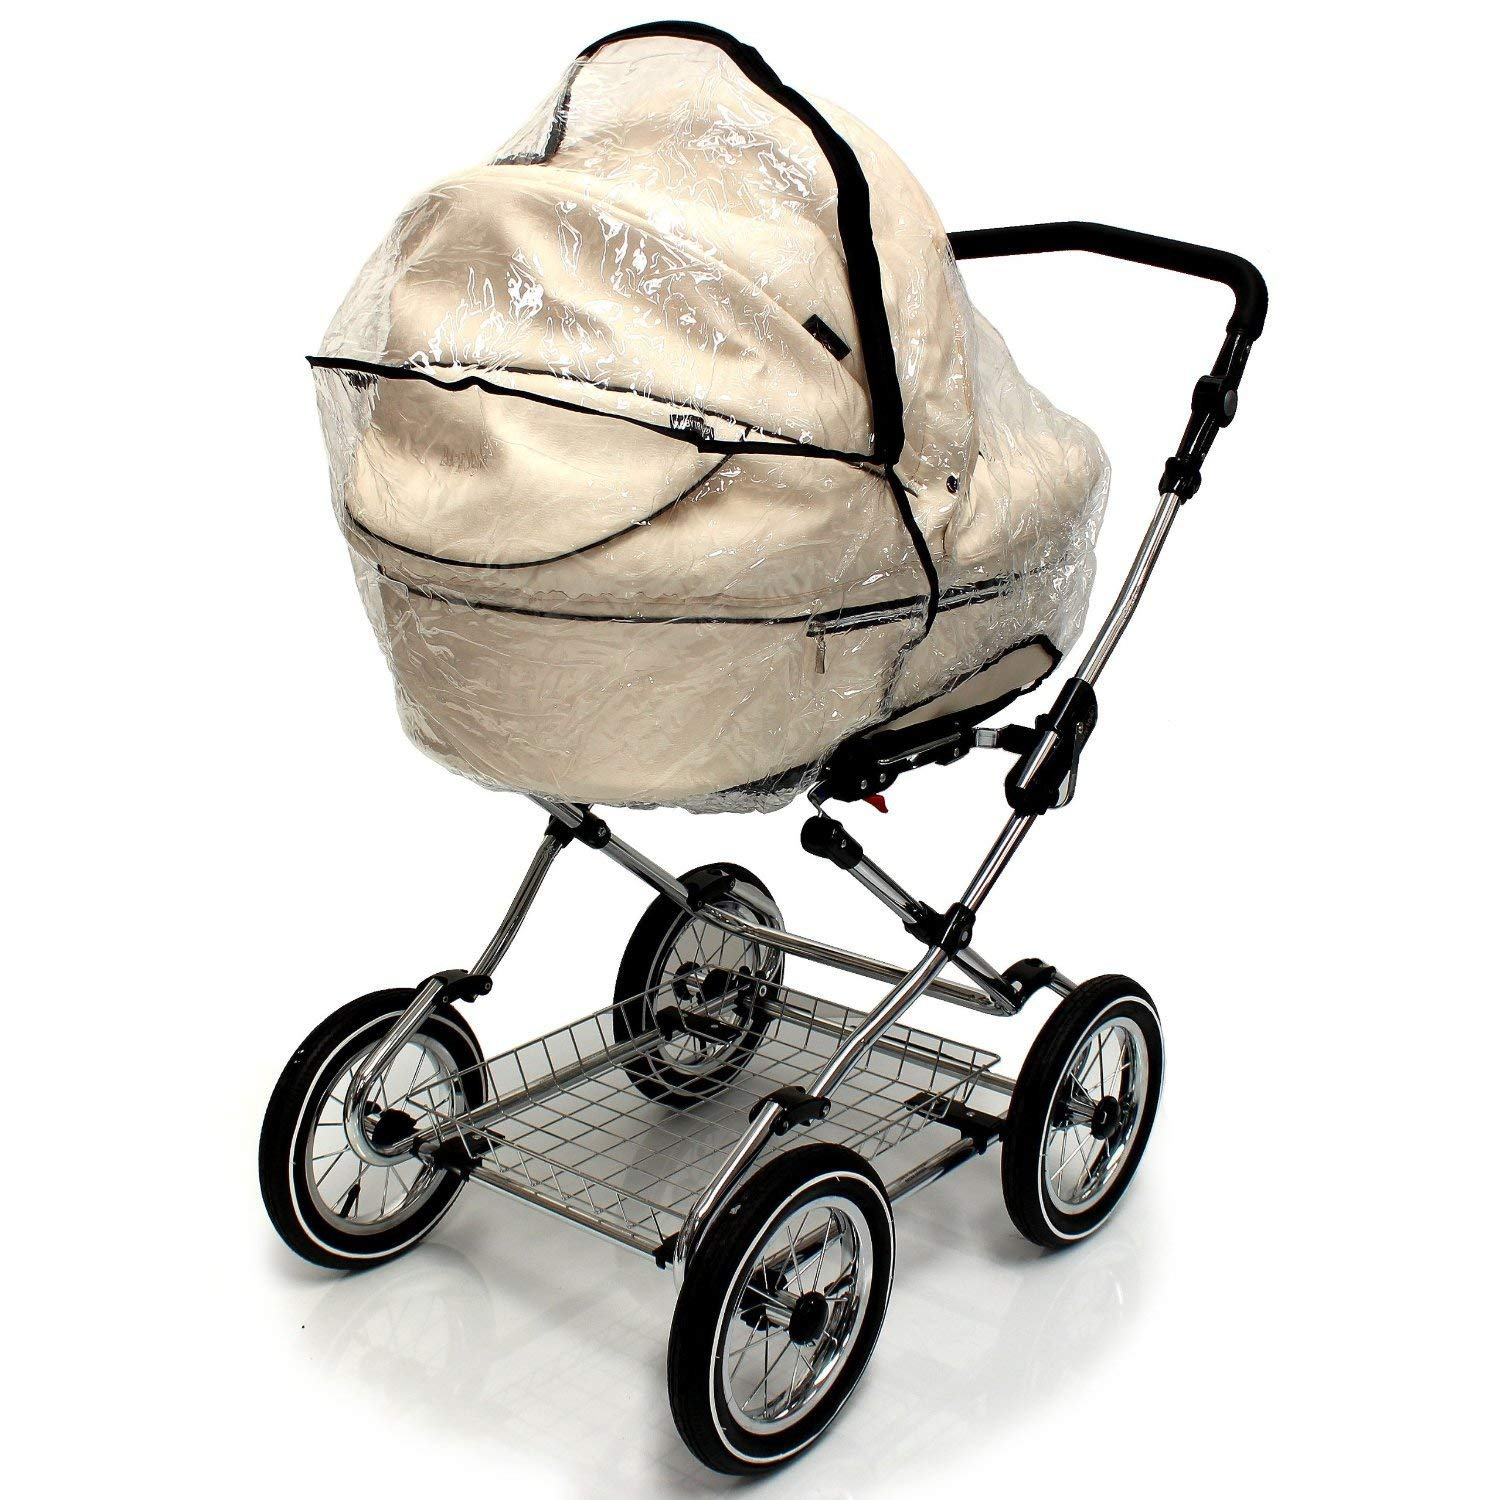 Baby Travel - Cubierta impermeable con cremallera para carritos Silvercross Freeway: Amazon.es: Bebé